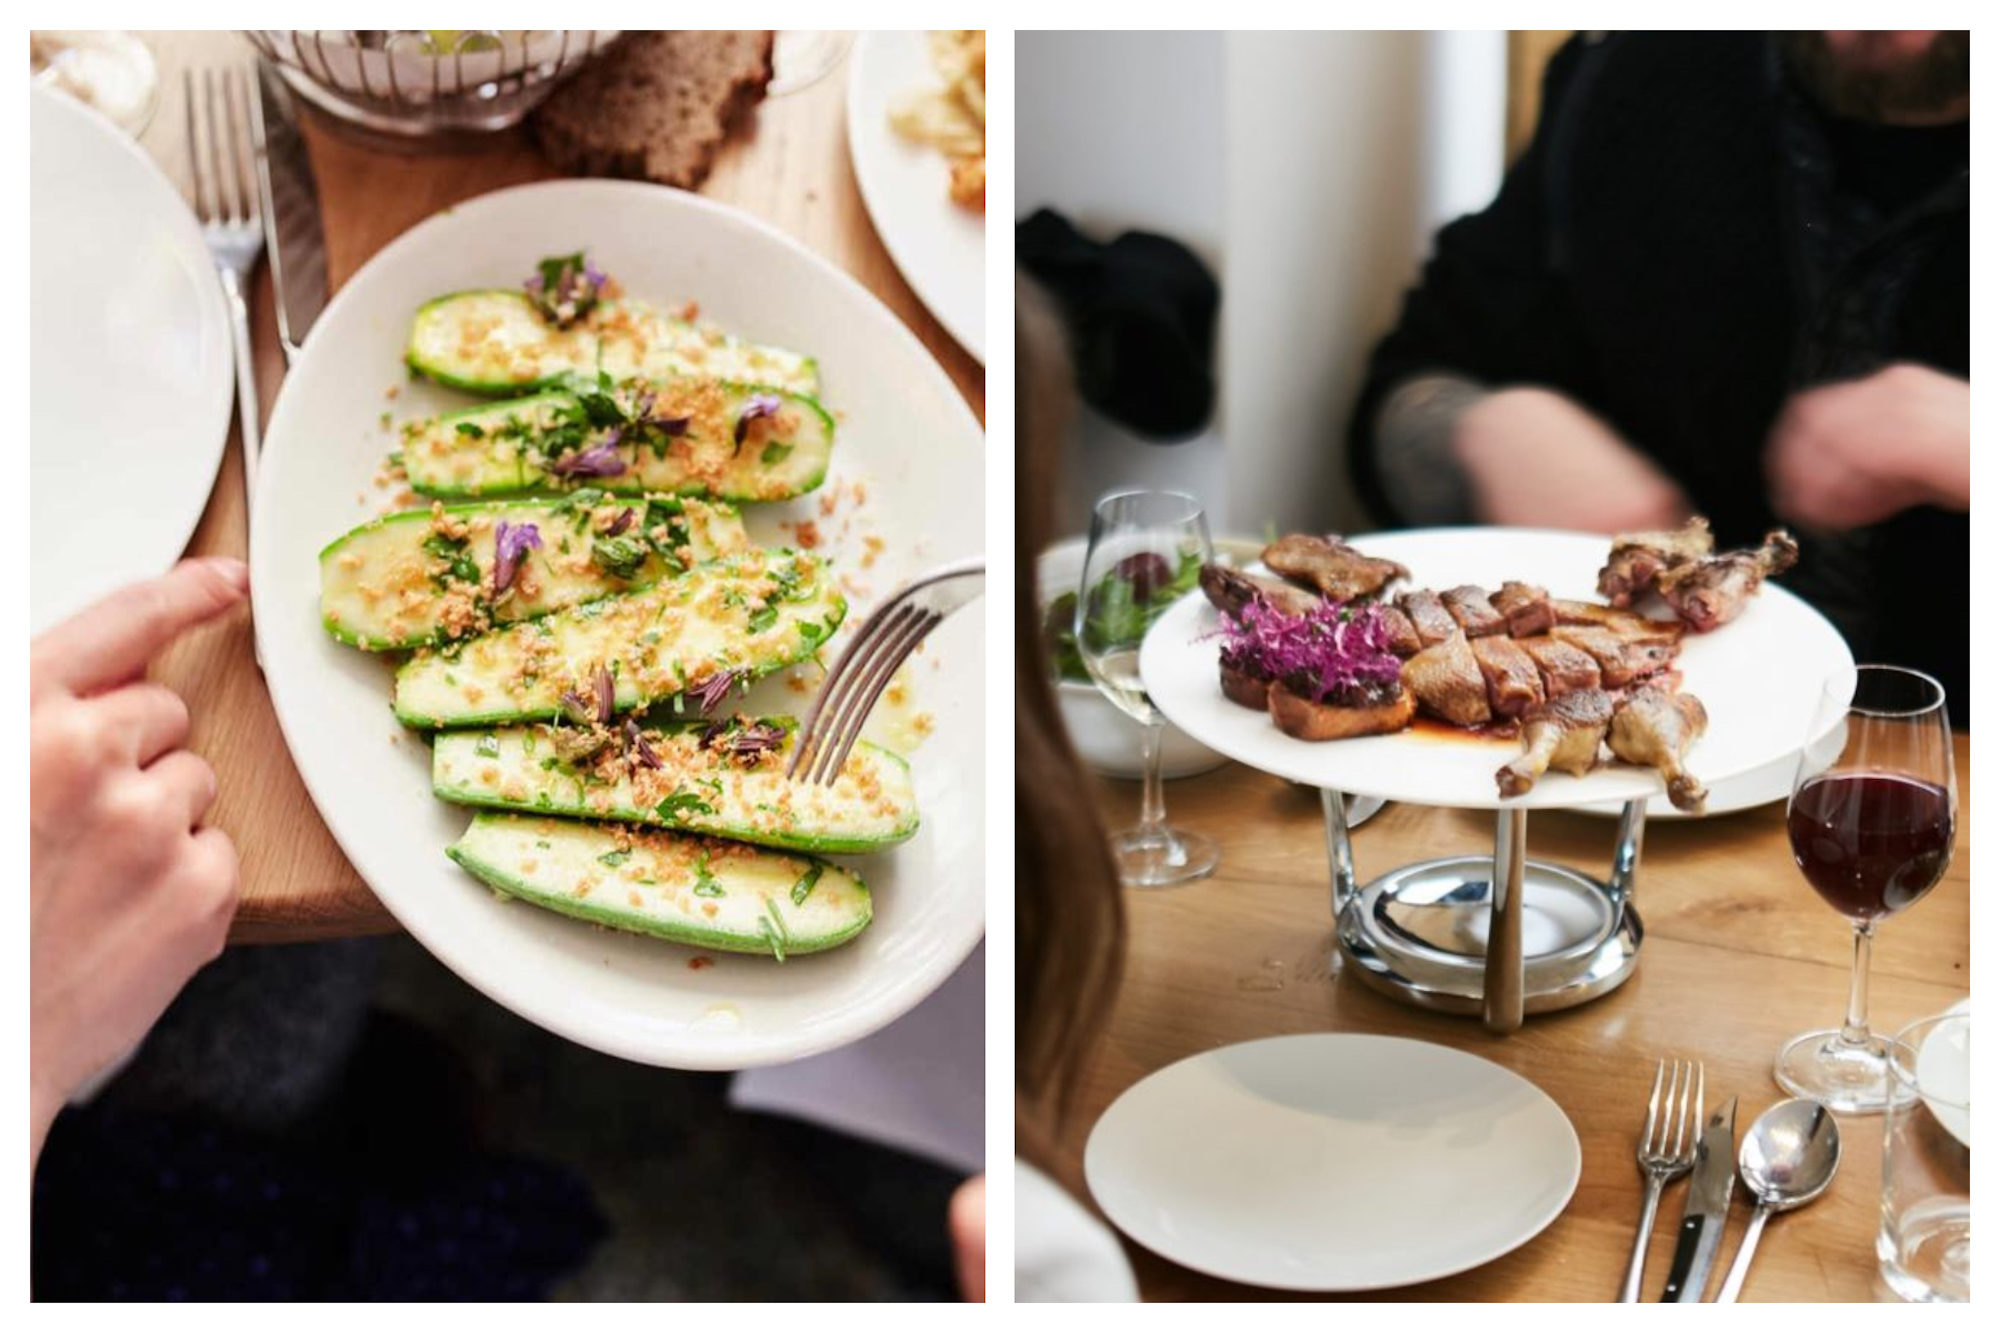 A go-to restaurant for great Italian food in Paris is Passerini for its crunchy courgettes (left) and meat dishes (right) as well as the hand-rolled pasta.